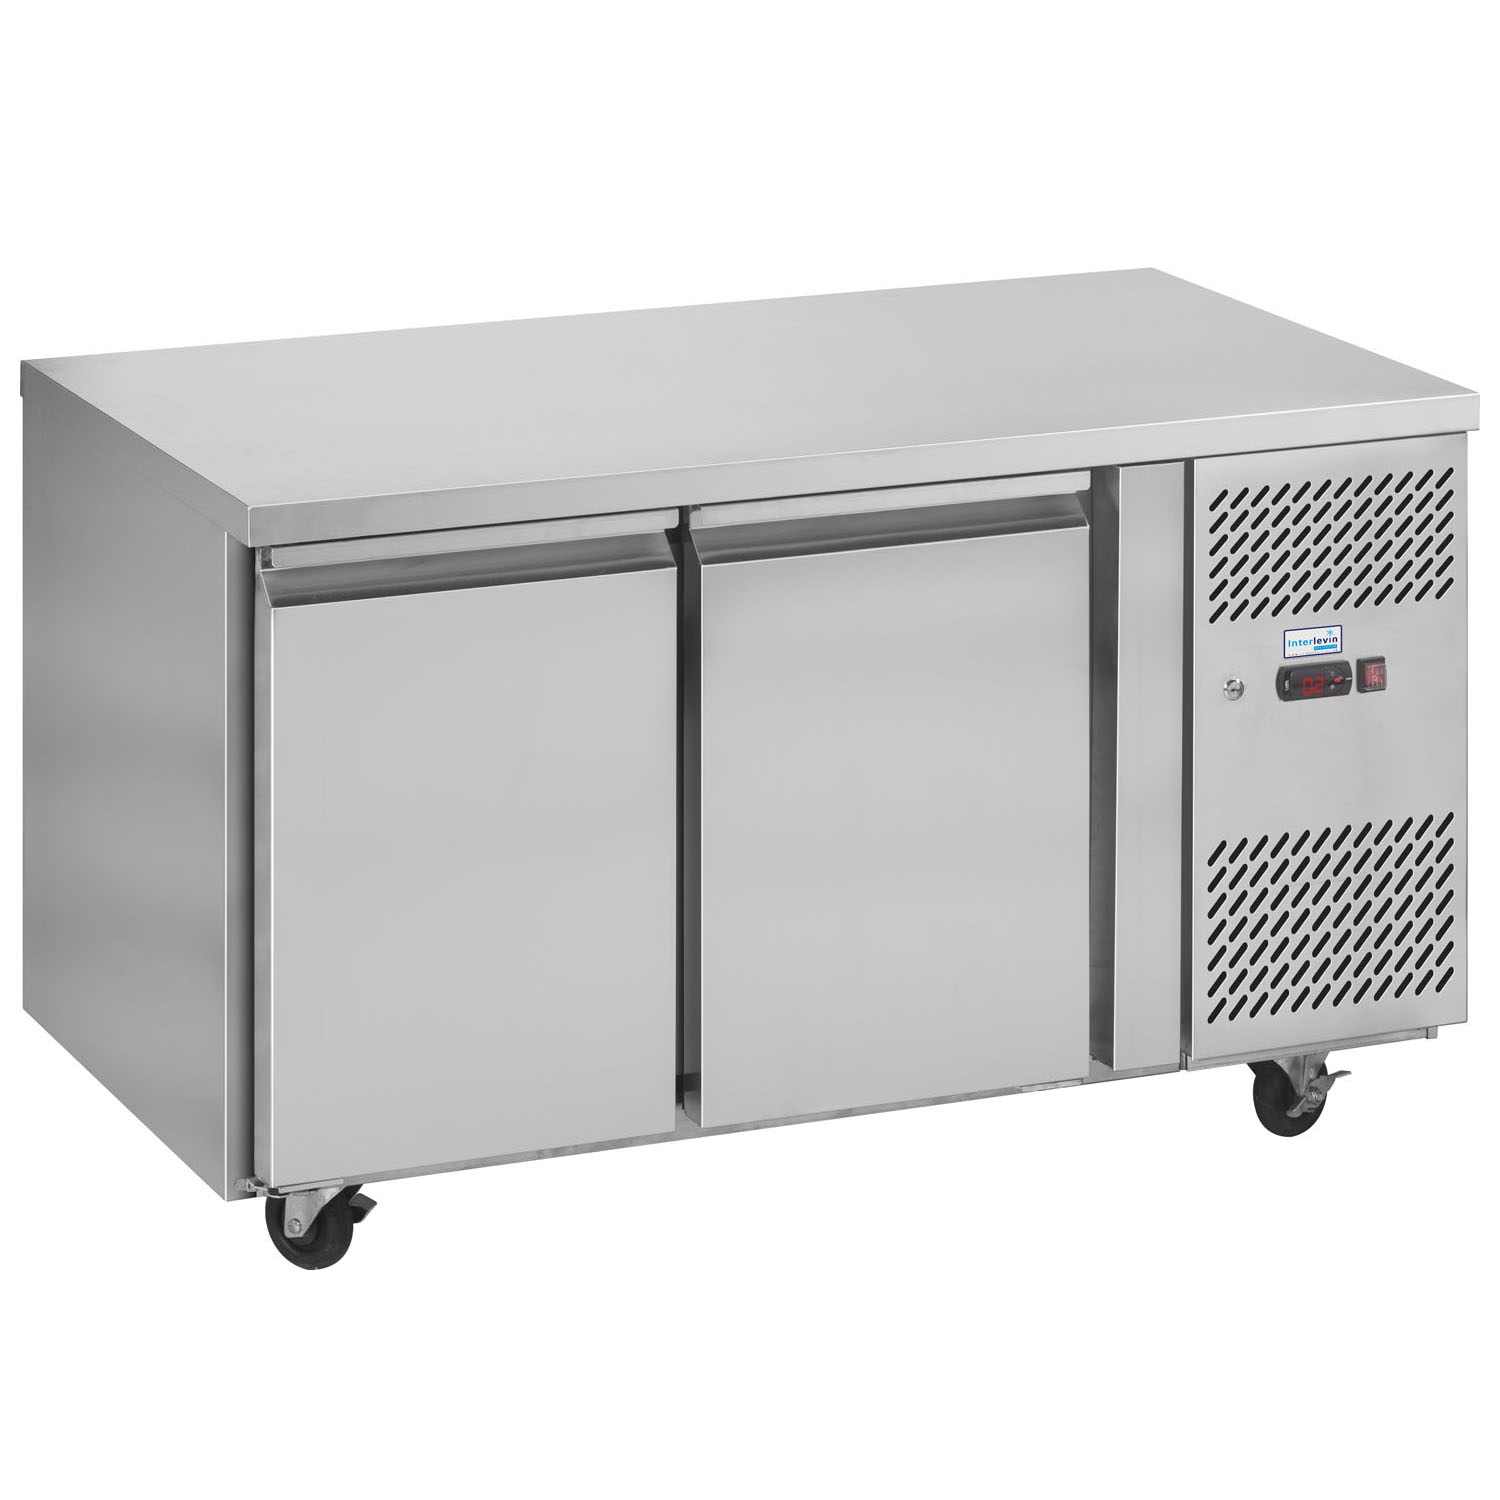 Interlevin PH20 Gastronorm Stainless Steel Counter 2-Door Chiller closed